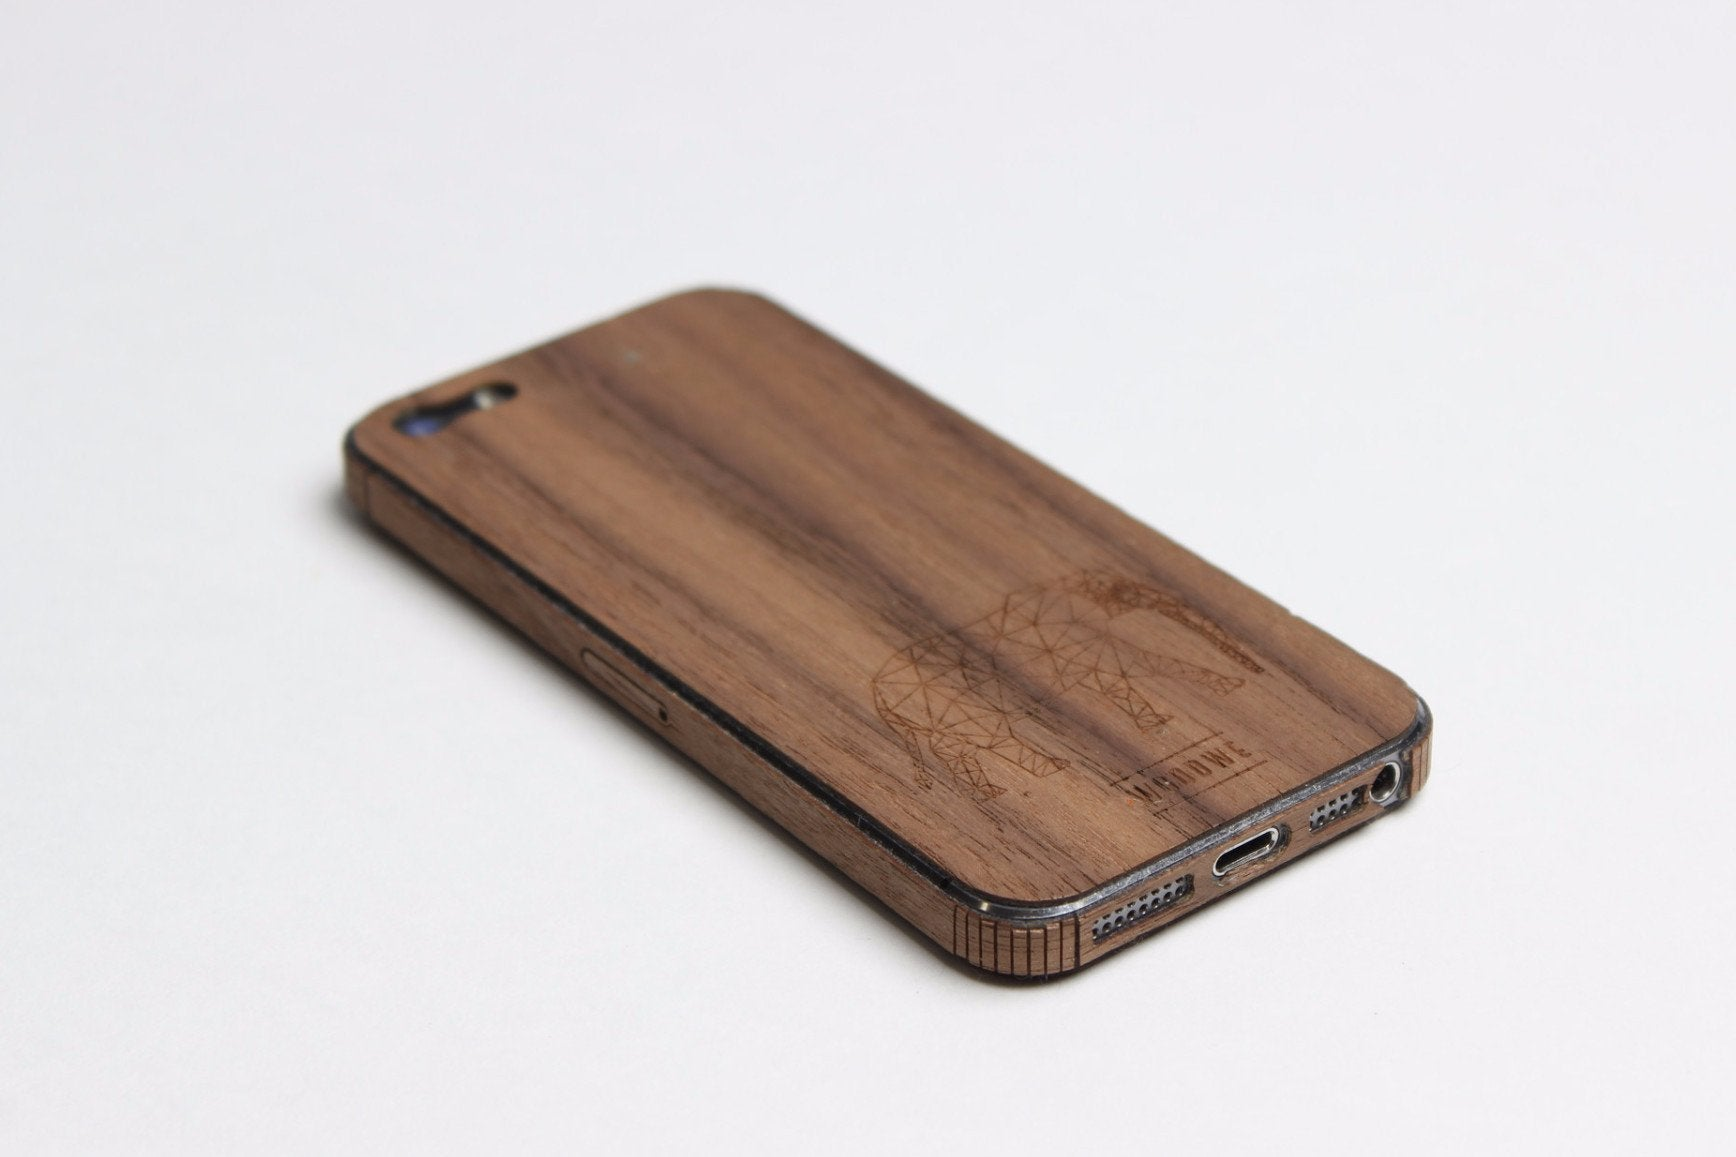 Natural Wood Case For Iphone 5 5s Walnut Woodwe 1 5se Real Cover